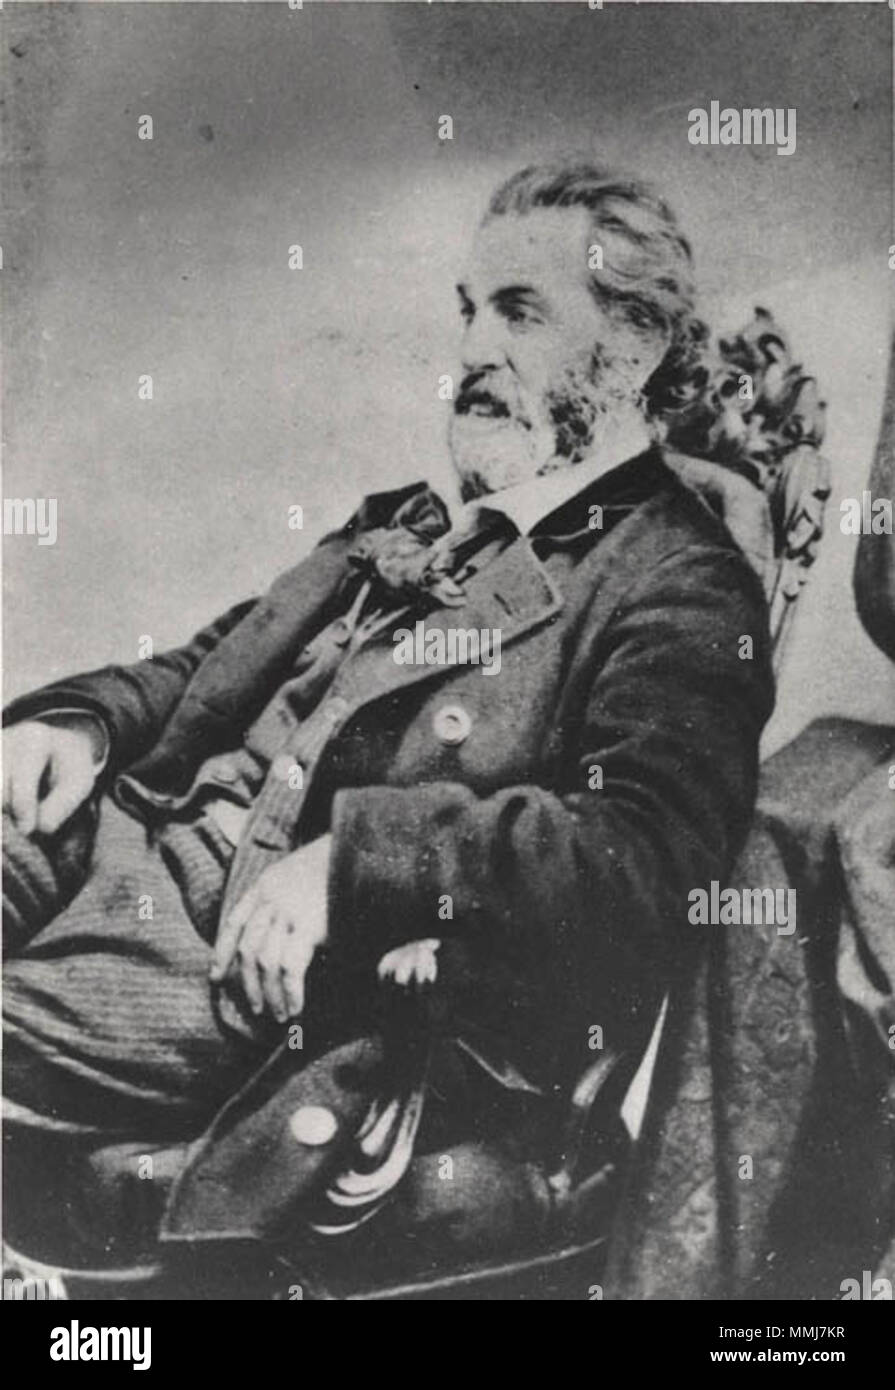 Portrait Of Walt Whitman Date 1860 Place Boston Photographer J W Black